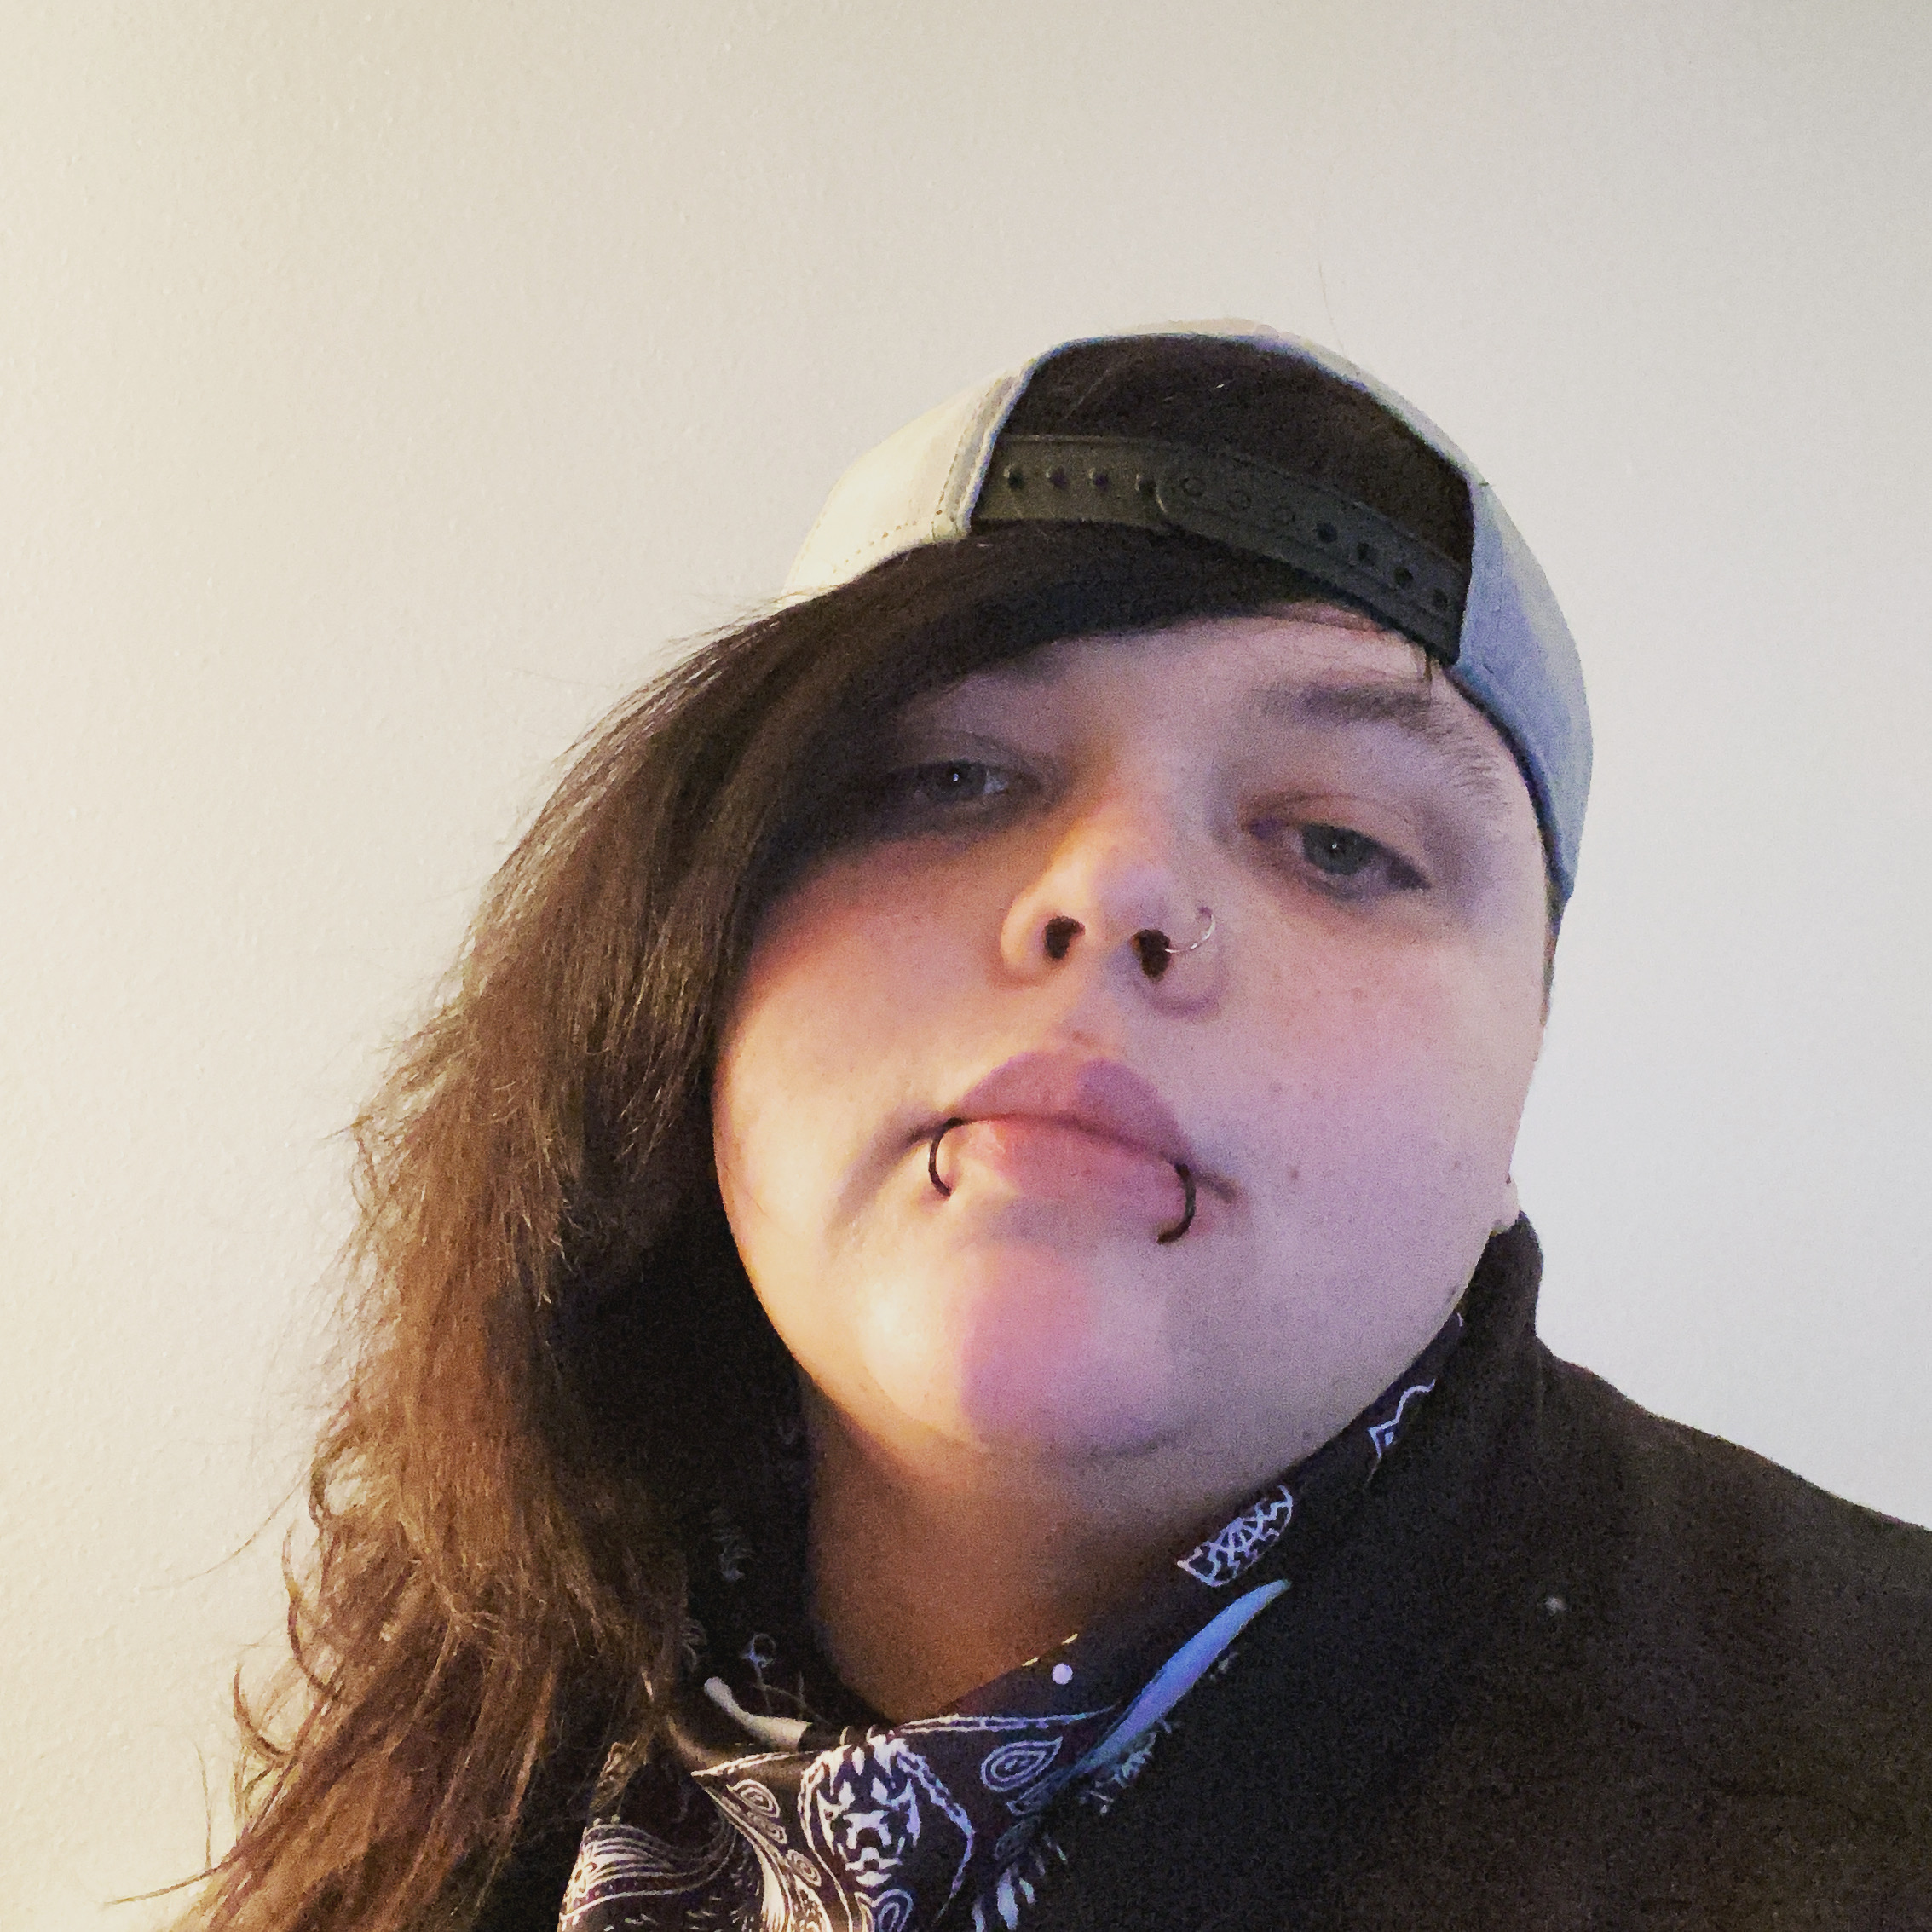 A person with lip piercings wearing a ball cap backwards